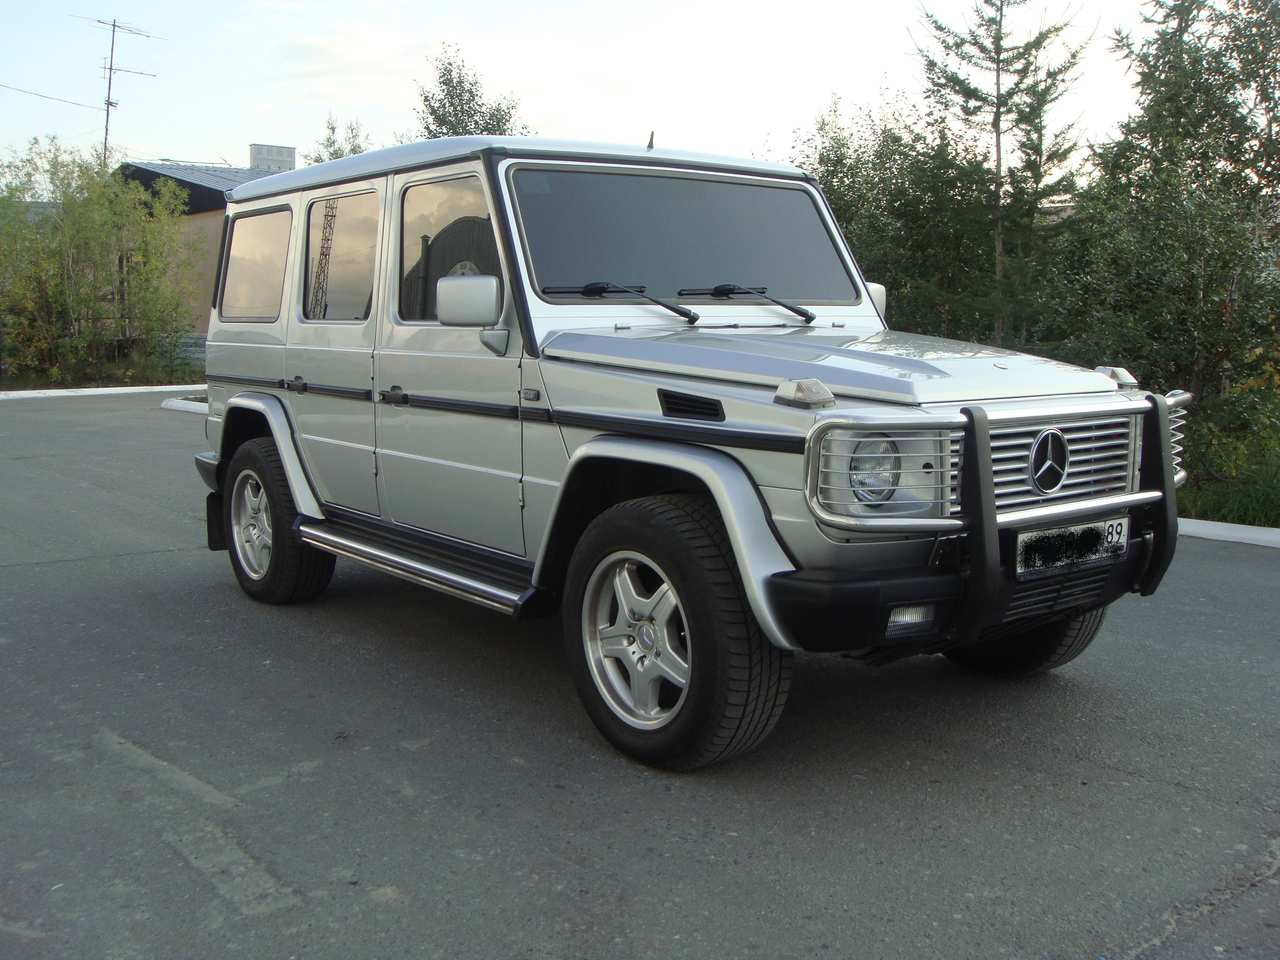 2000 mercedes benz g class pictures diesel automatic for sale. Black Bedroom Furniture Sets. Home Design Ideas